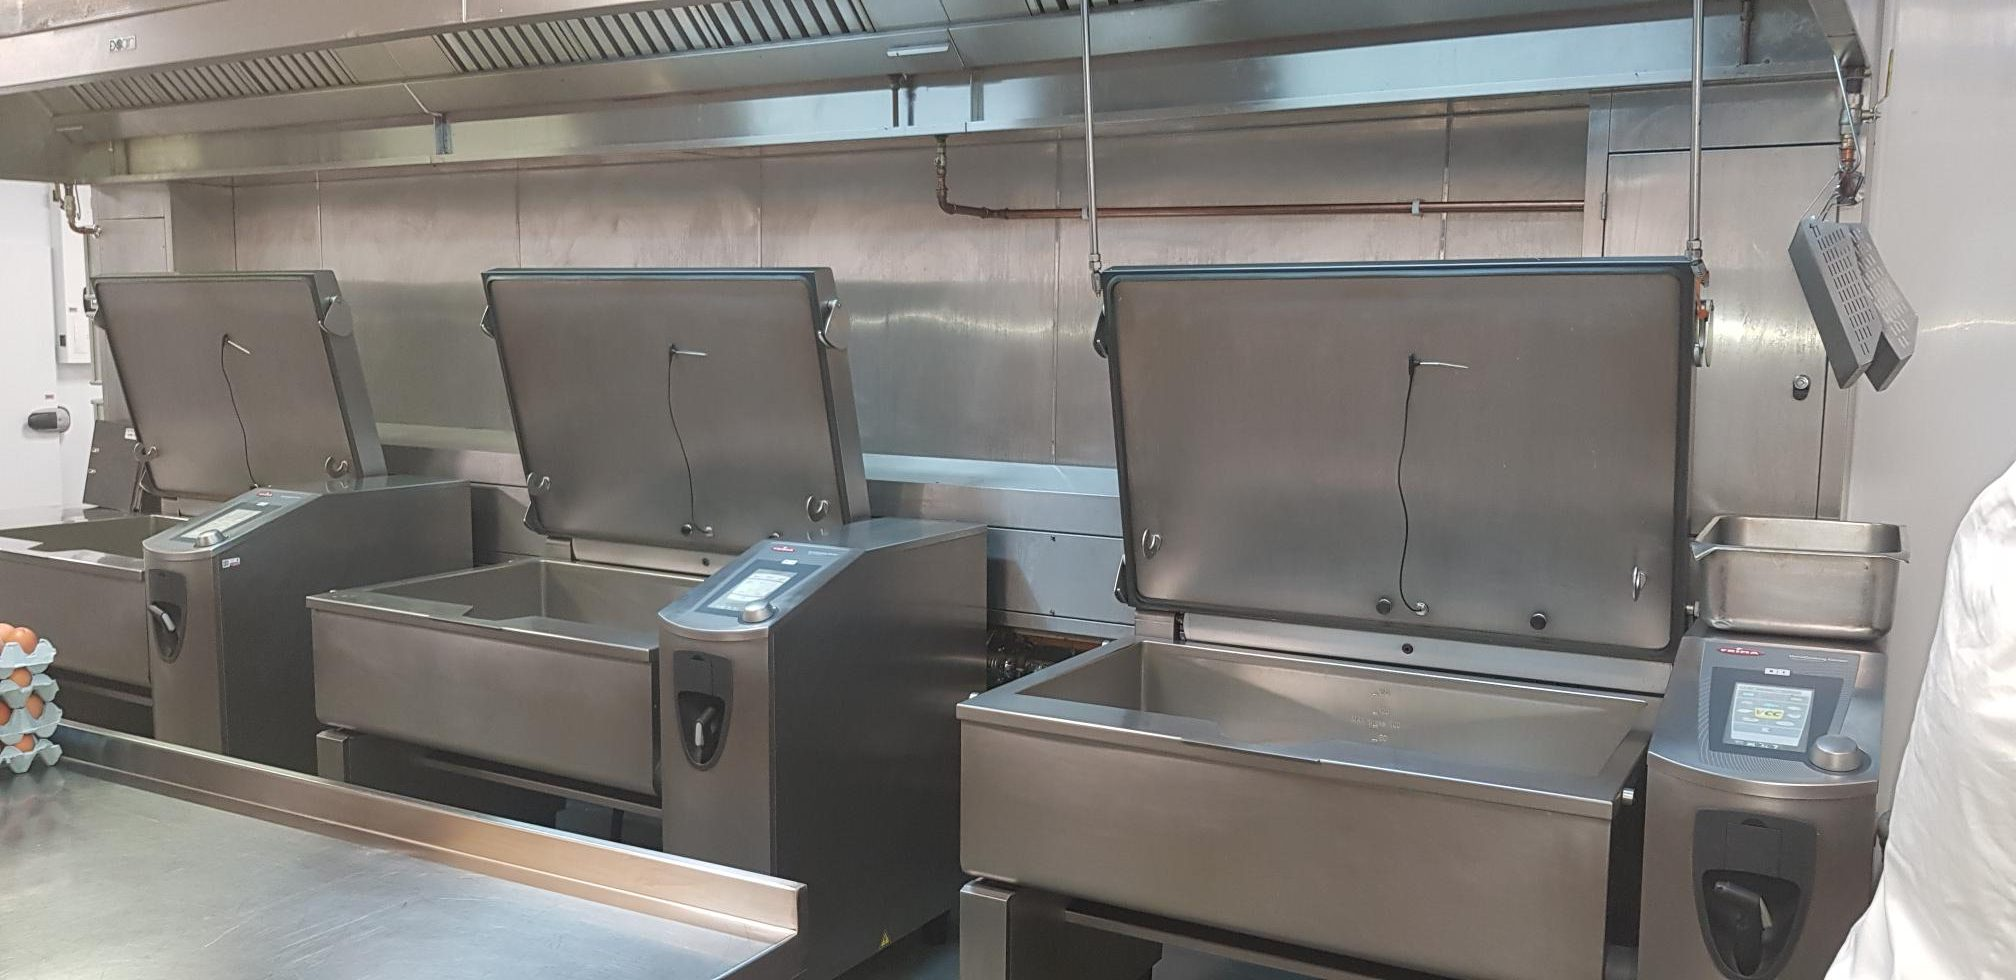 Service 2 - Anfield Liverpool FC catering 14